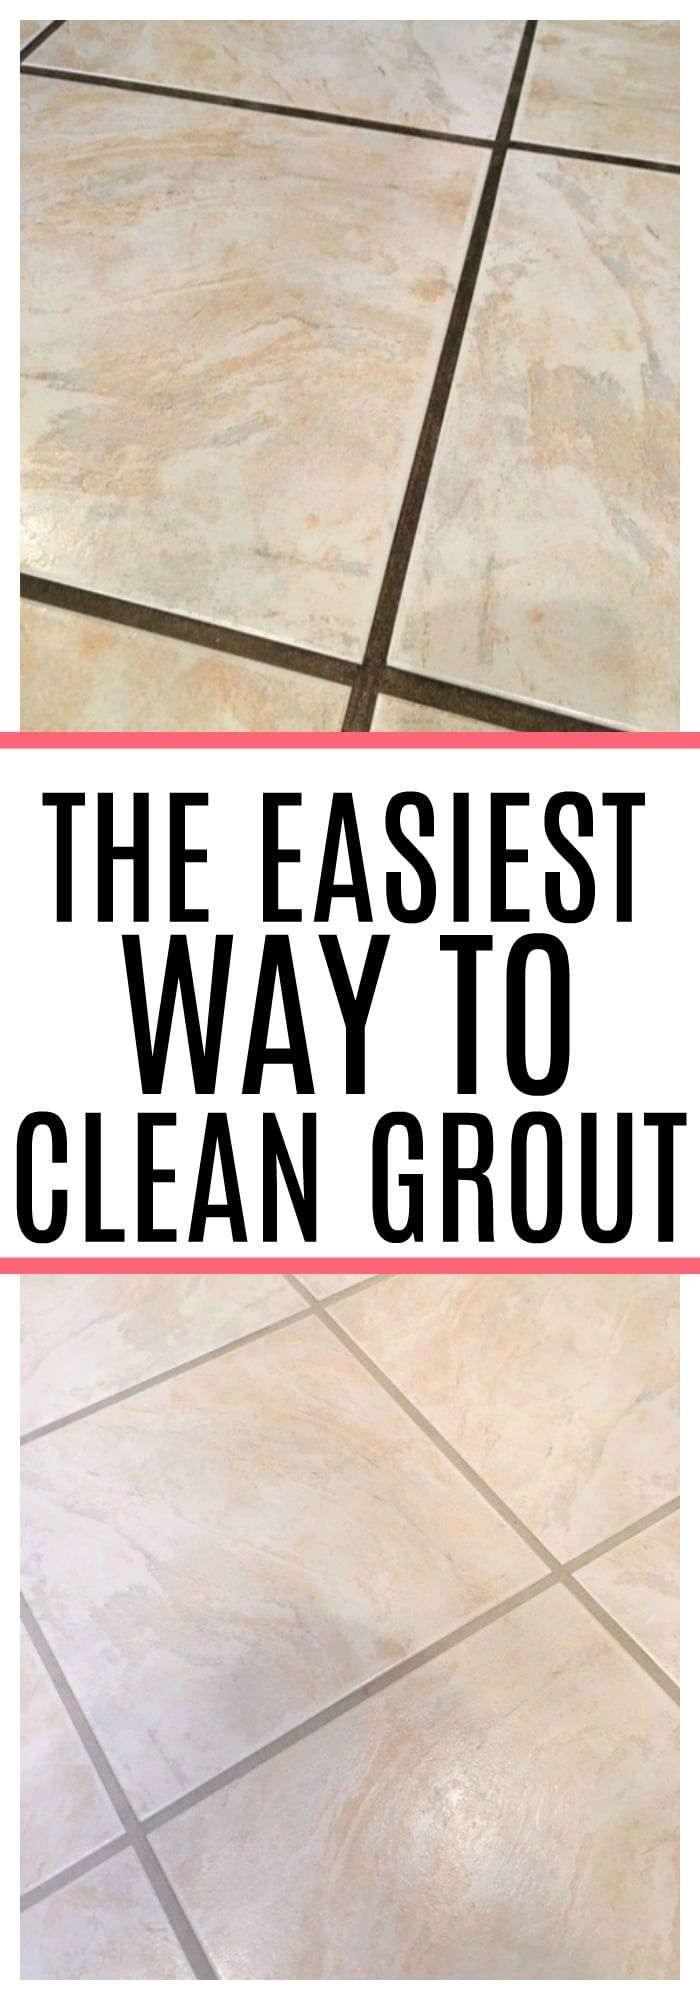 a430bf7b8a83ced12ca7542c1742b396 Dealing with dirty grout? Check out the easiest way to clean grout. See how to c...